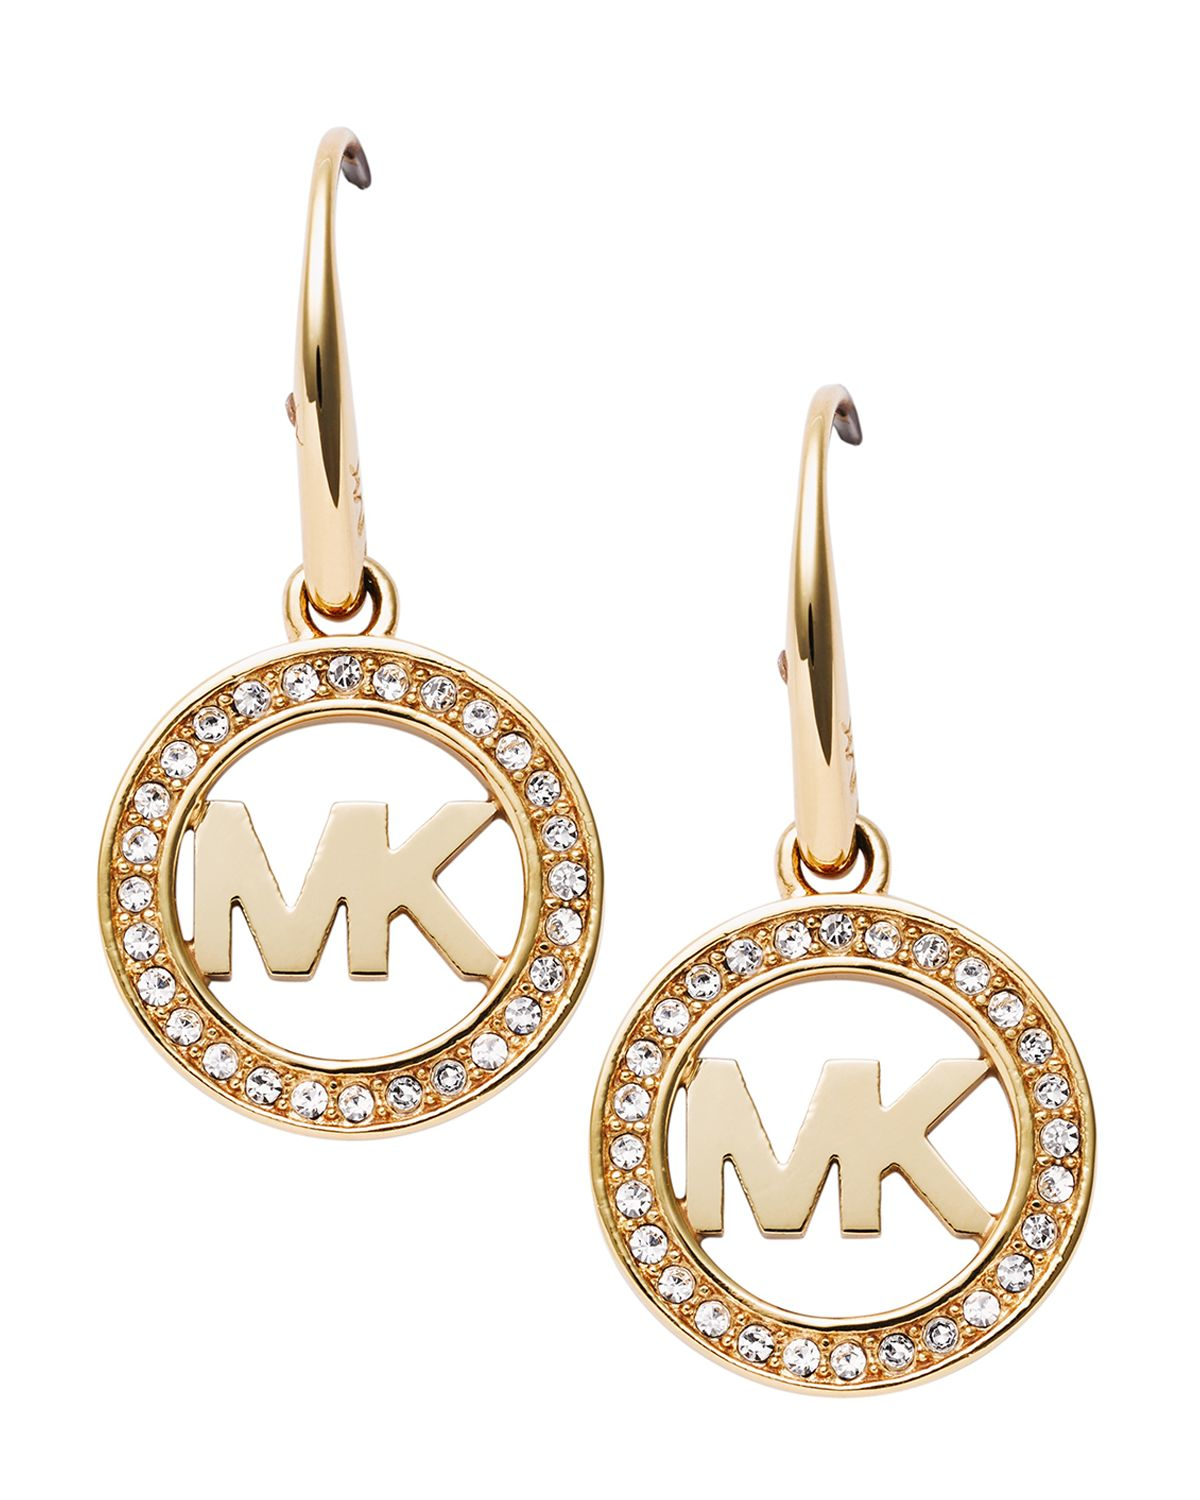 michael kors pav logo earrings in gold lyst. Black Bedroom Furniture Sets. Home Design Ideas